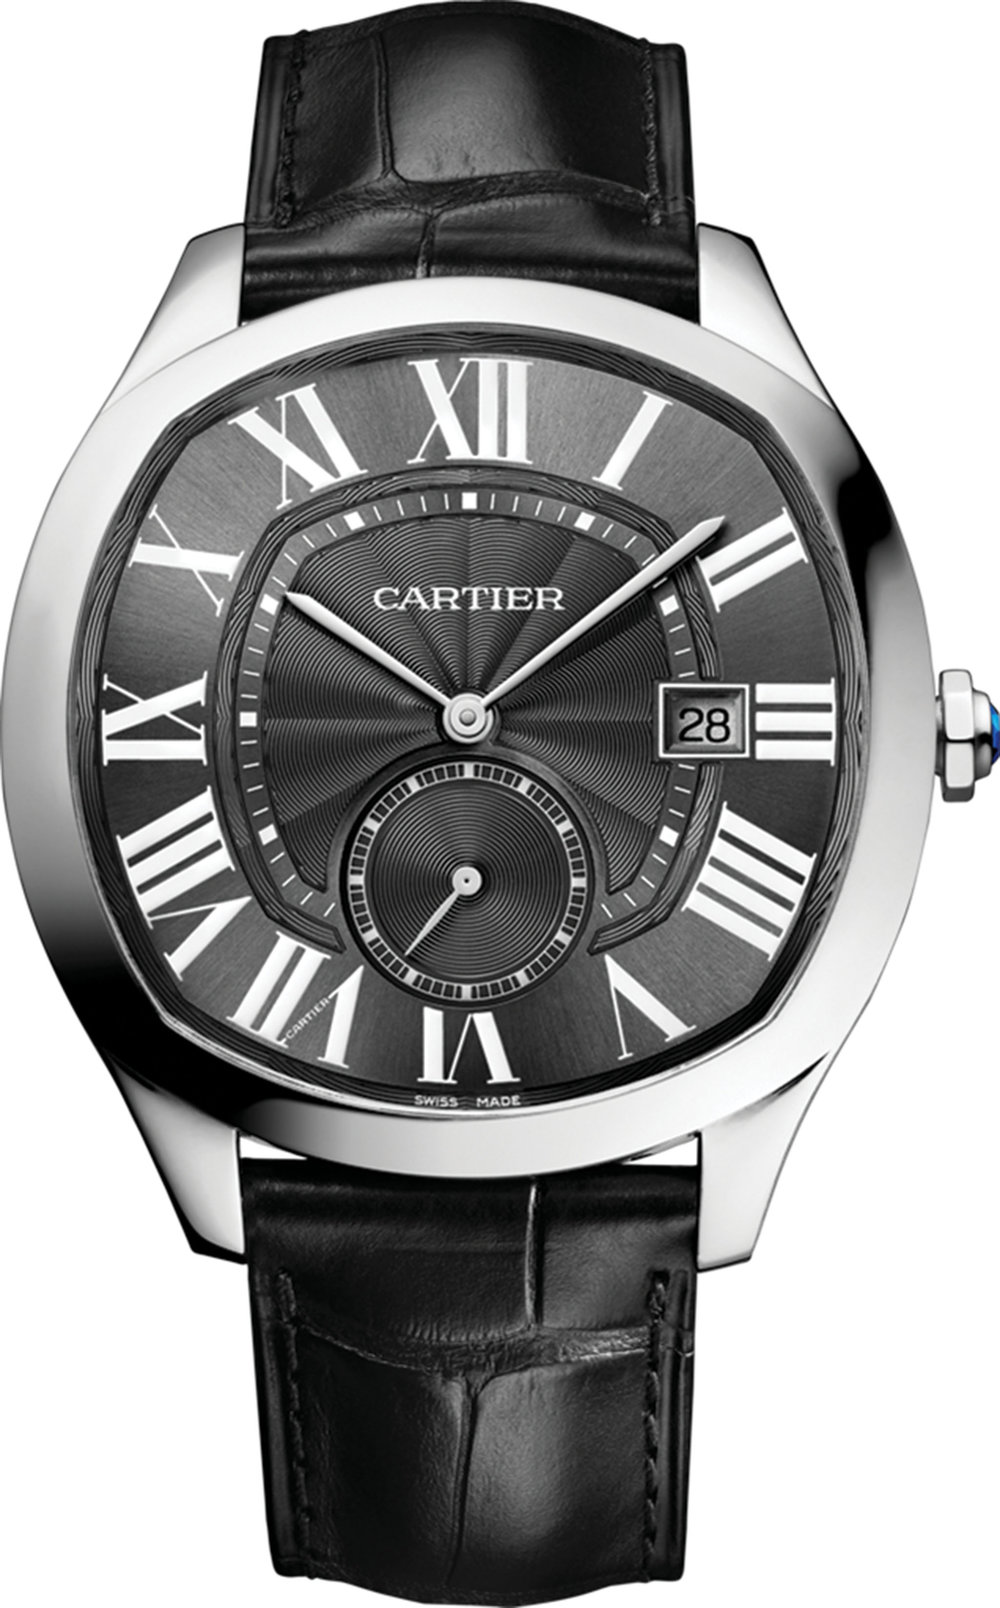 7.Drive de Cartier Watch by Cartier $7,900,  cartier.com